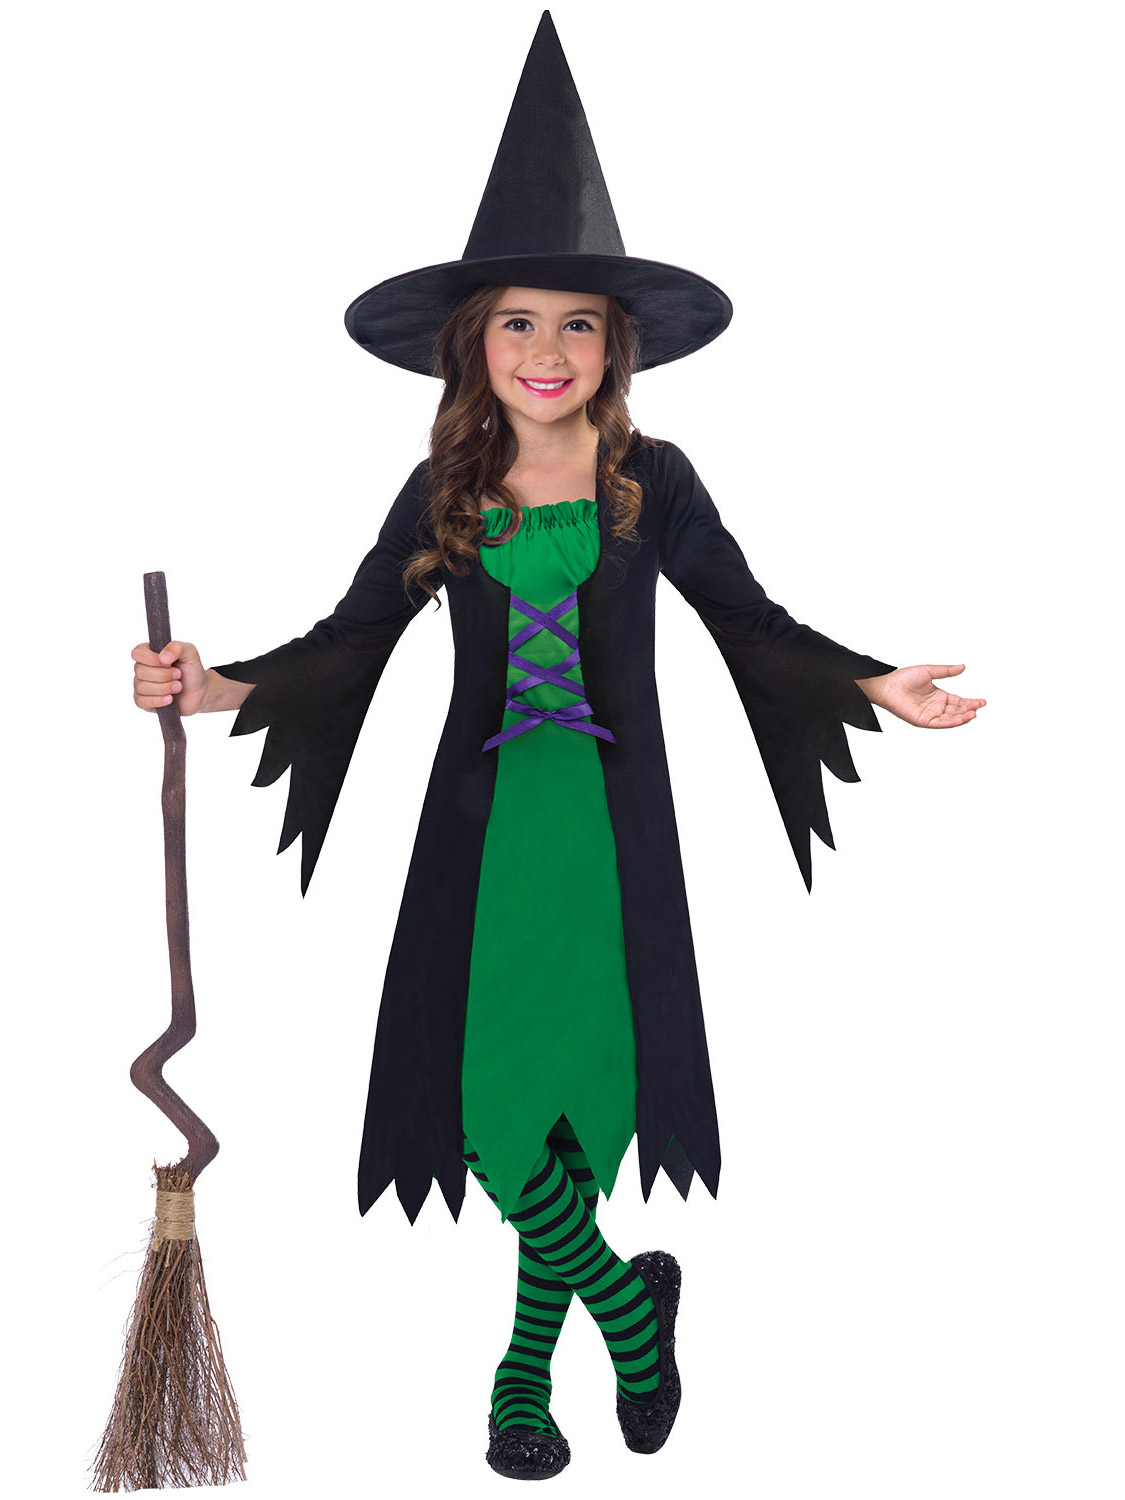 HALLOWEEN WITCH COSTUME GIRLS Kids Fancy Dress Outfit Childrens Party Witches UK